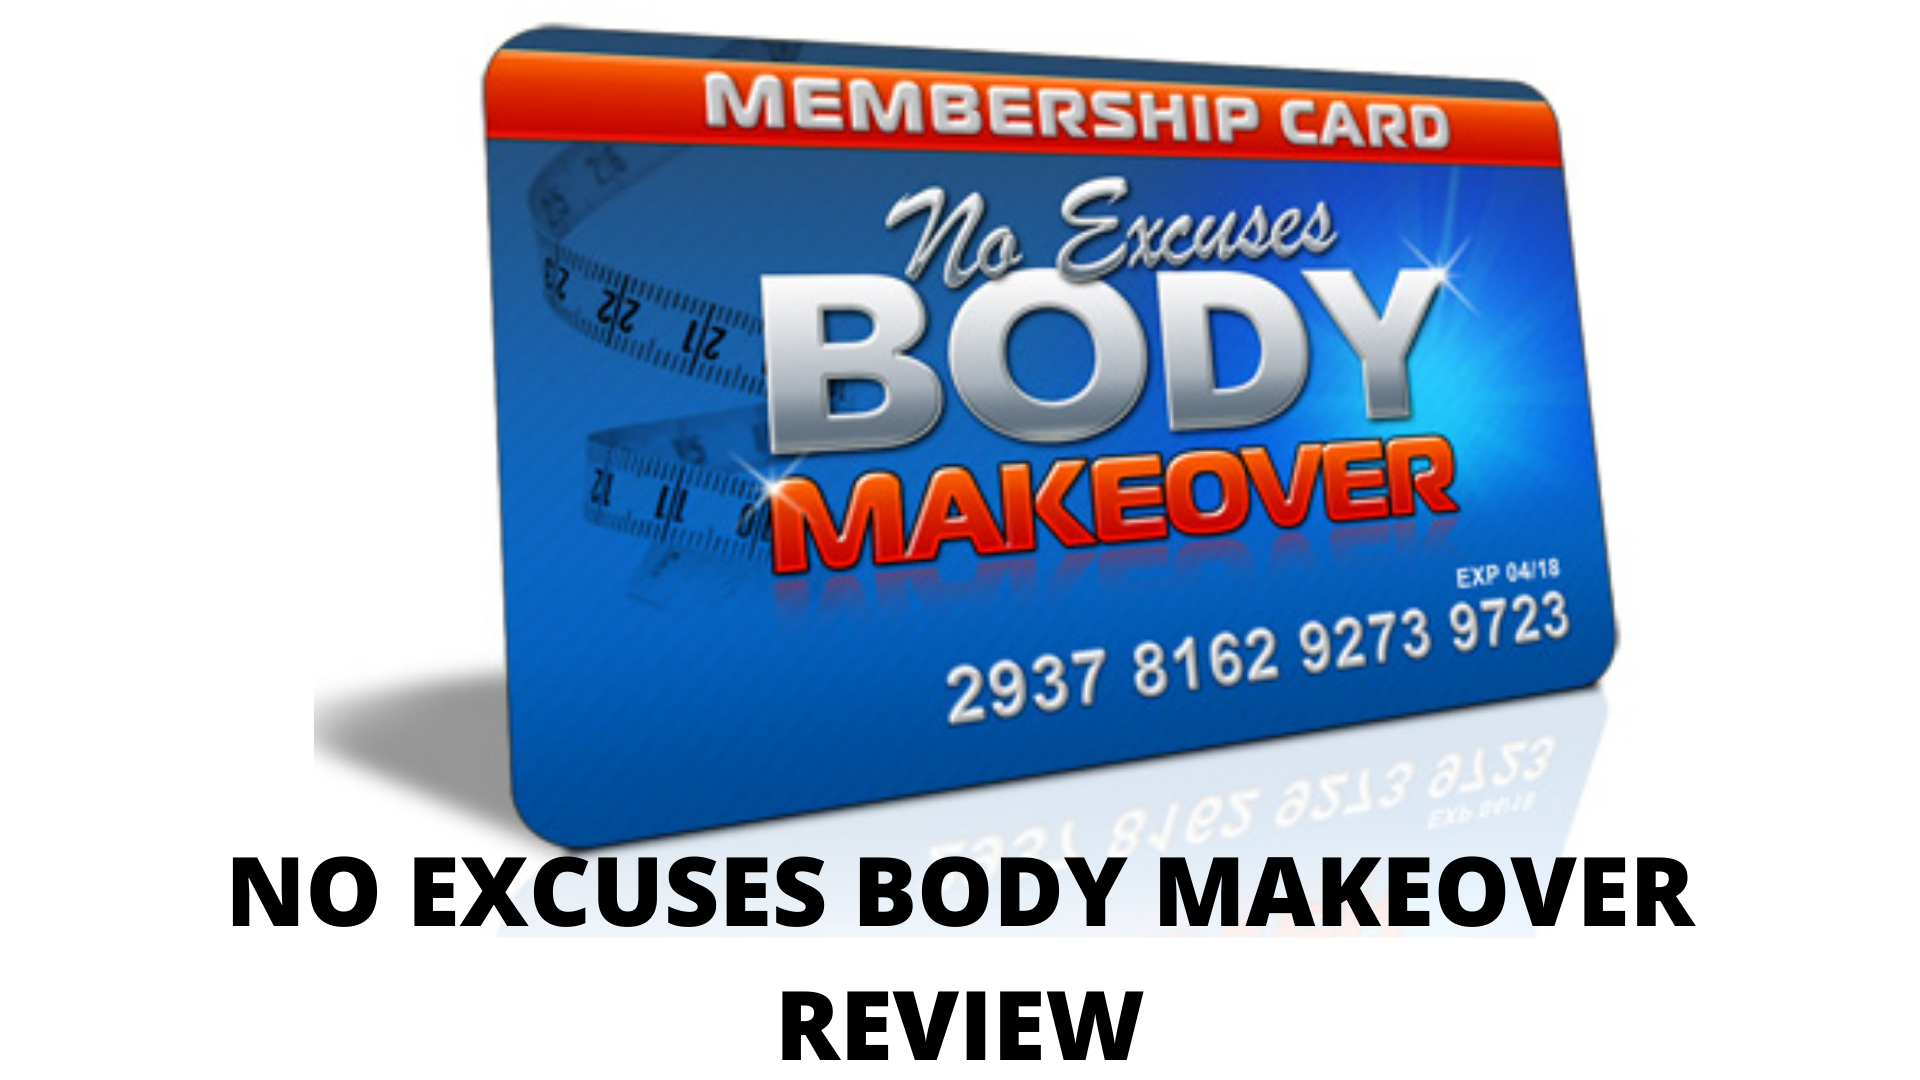 No Excuses body makeover review-  Will you benefit from this program?